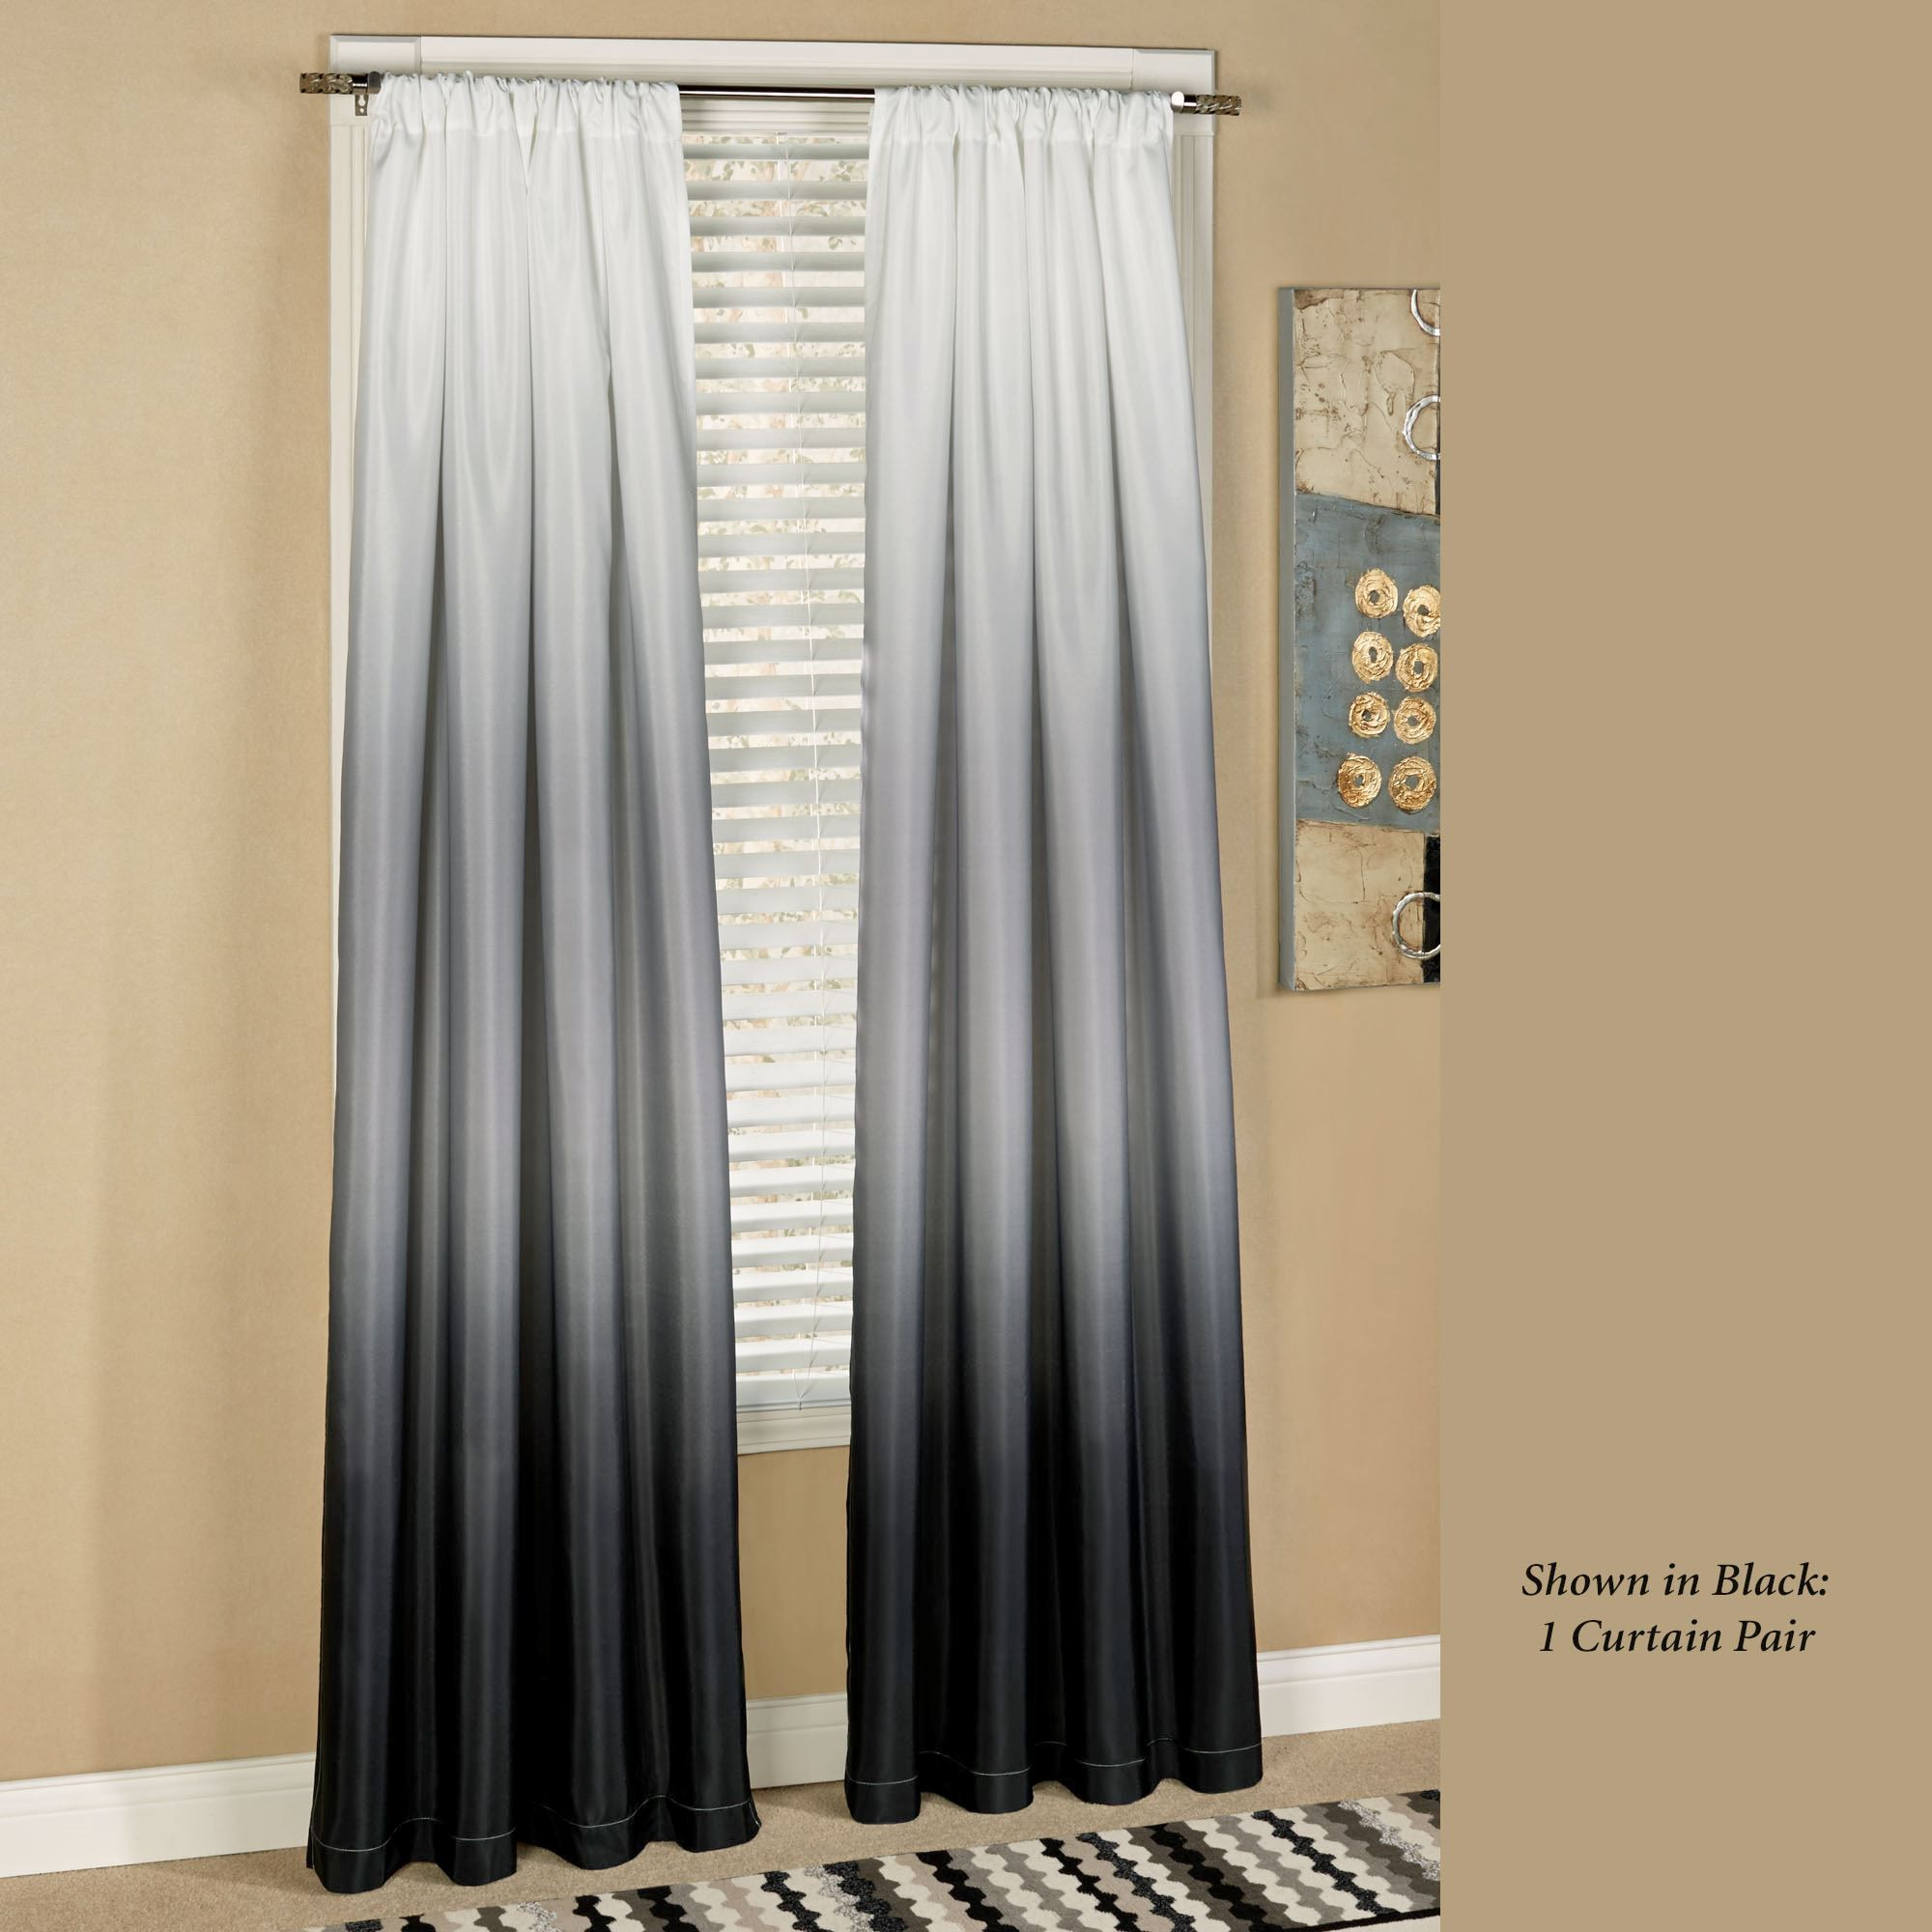 Shades Ombre Curtains | Ombre curtains, Window and Bathroom window ...